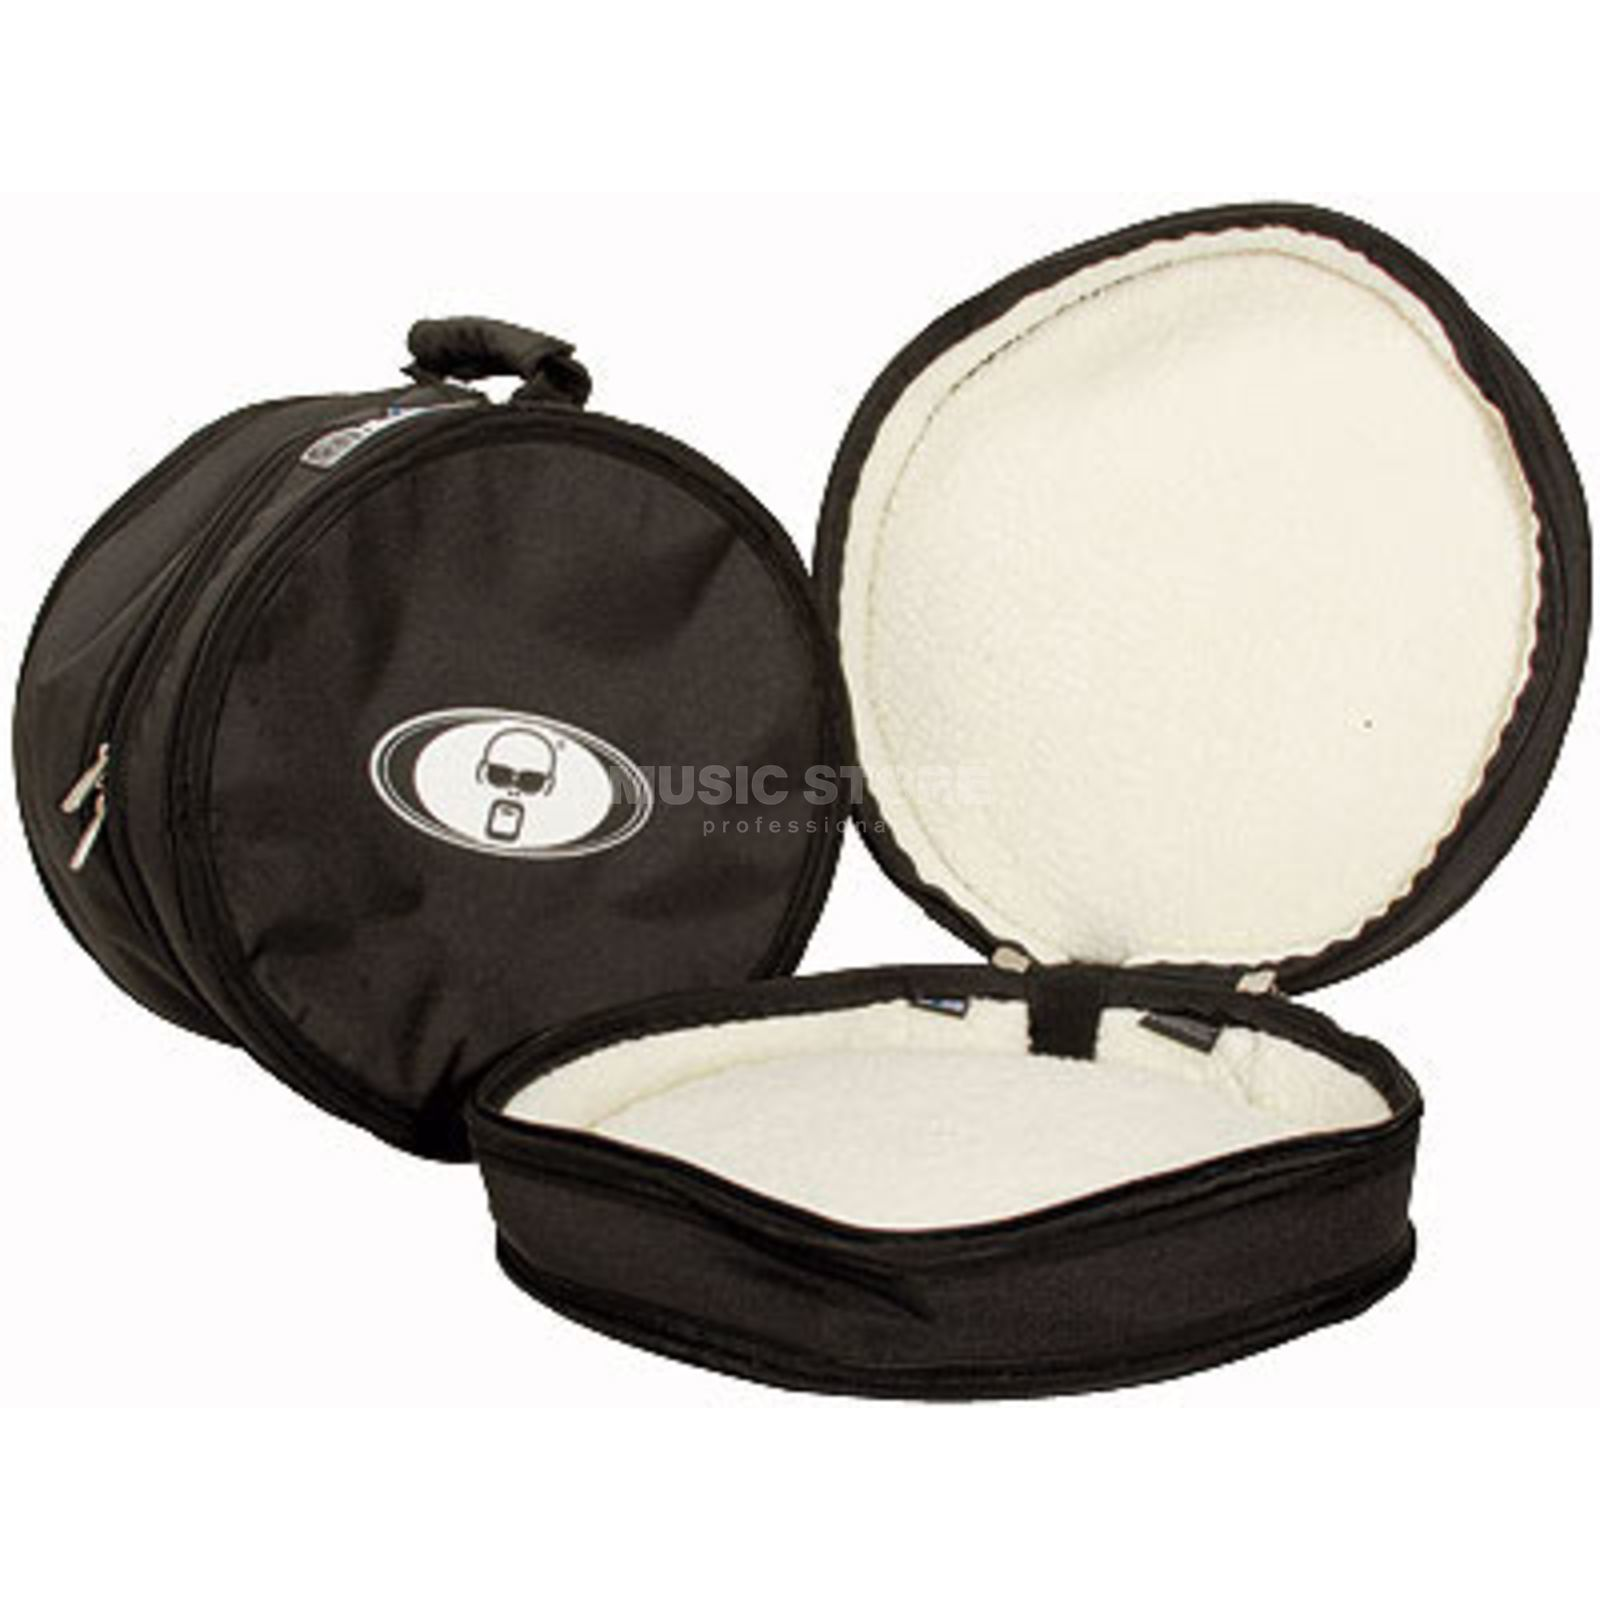 "Protection Racket Tom Bag 5014, 14""x10"" Immagine prodotto"